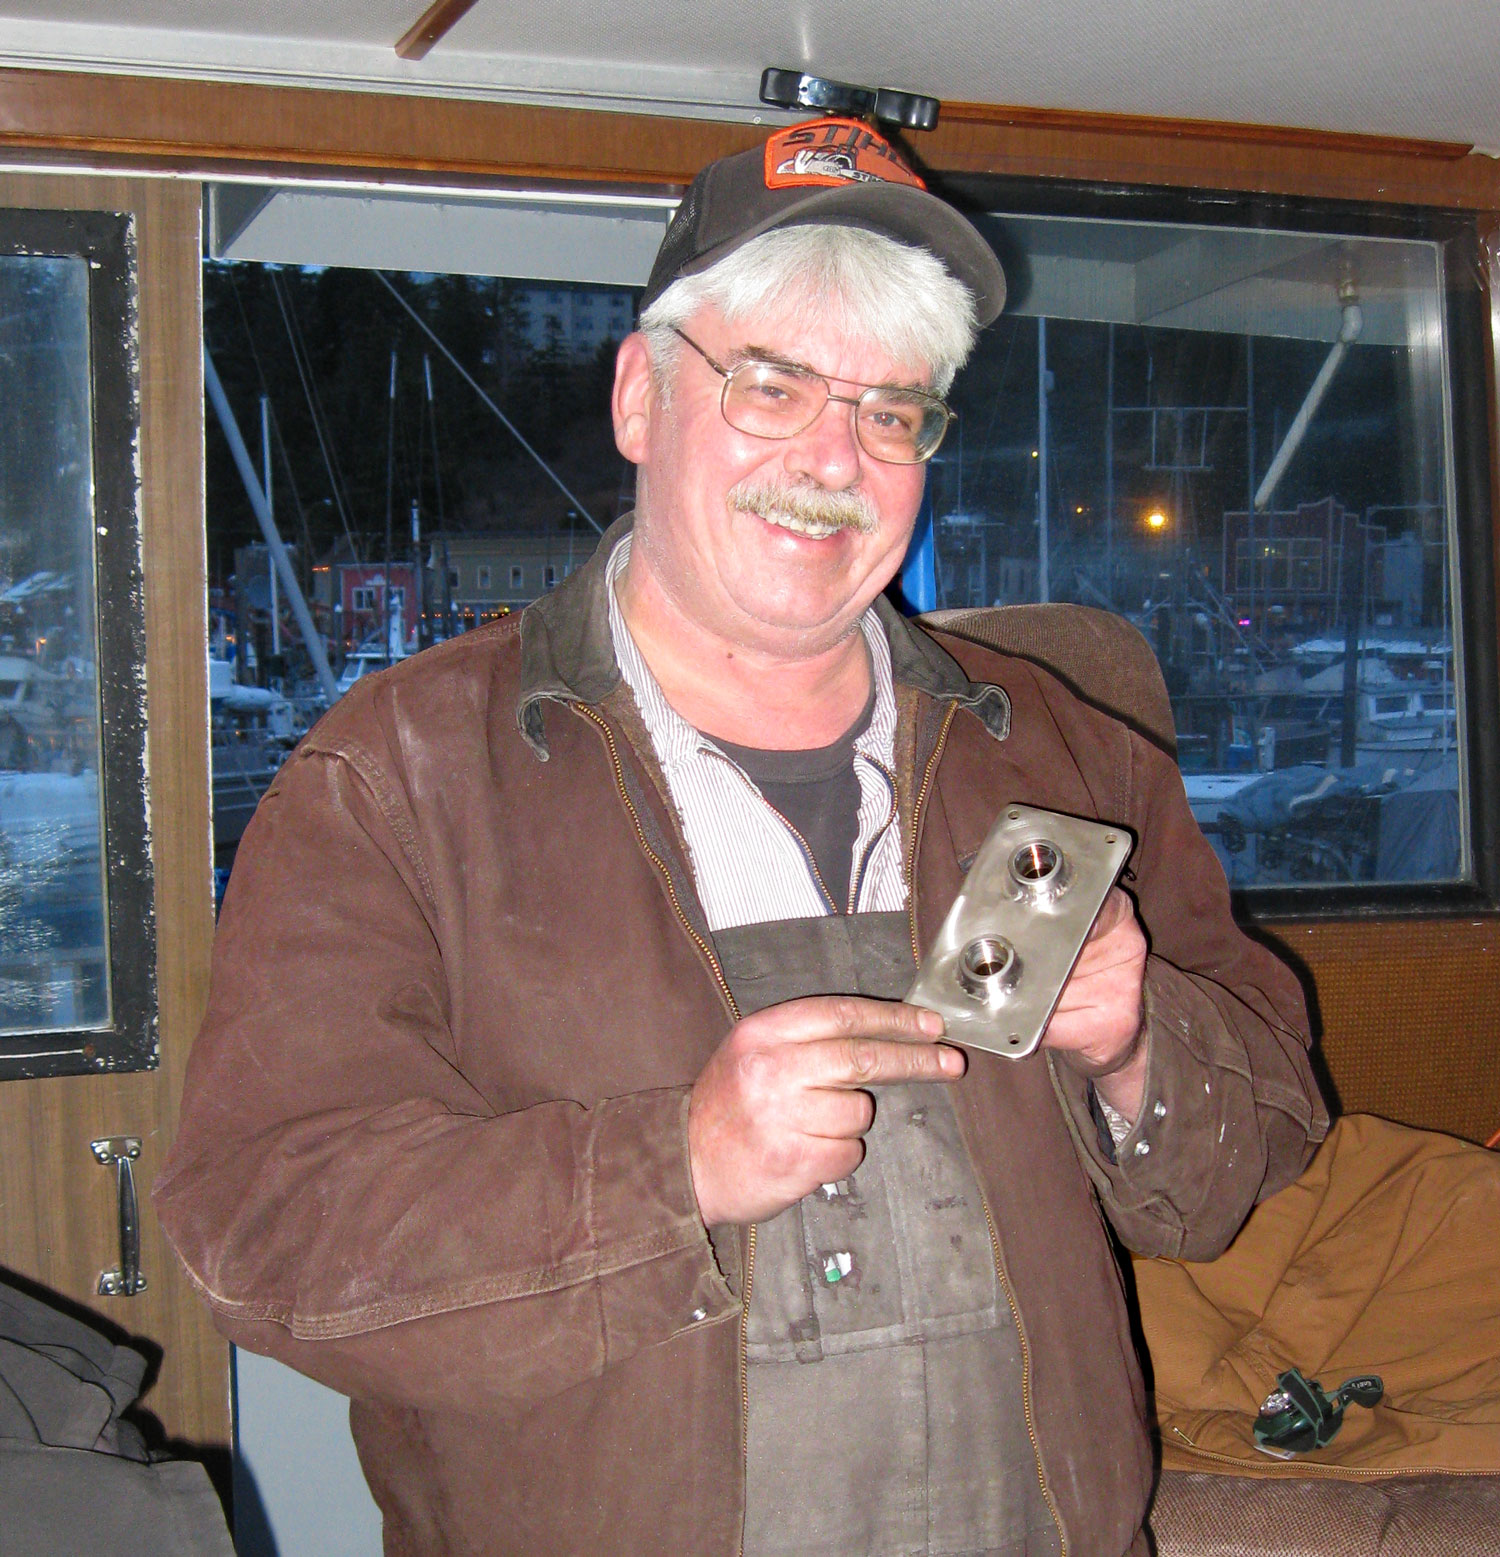 Meet Harley Bray. He is a great, good-natured guy, who installed the hydraulic pump, tank fittings, and lots more!